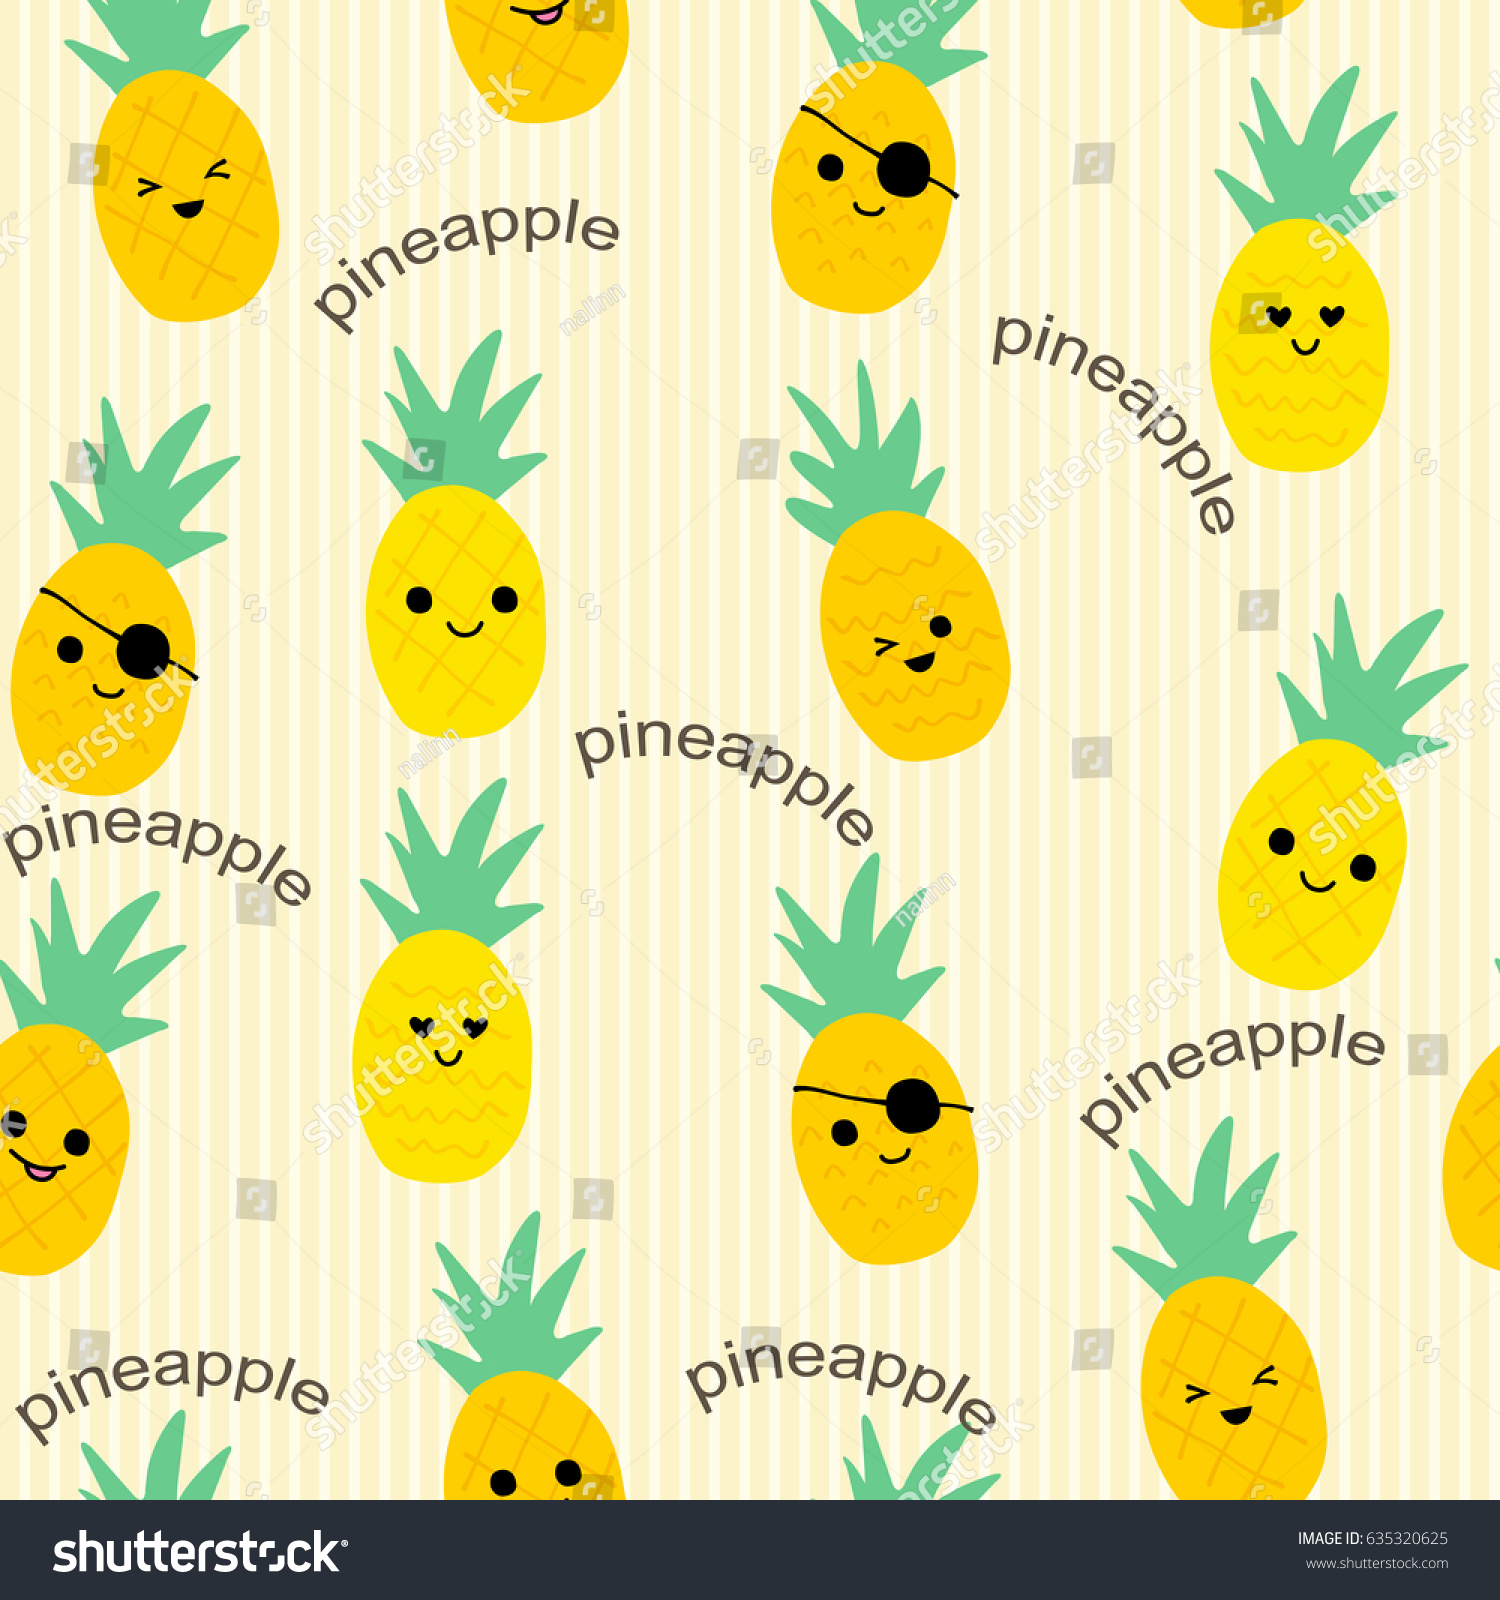 Best Wallpaper Macbook Pineapple - stock-vector-seamless-pineapple-pattern-for-textile-fabric-or-wallpaper-backgrounds-635320625  2018_782213.jpg